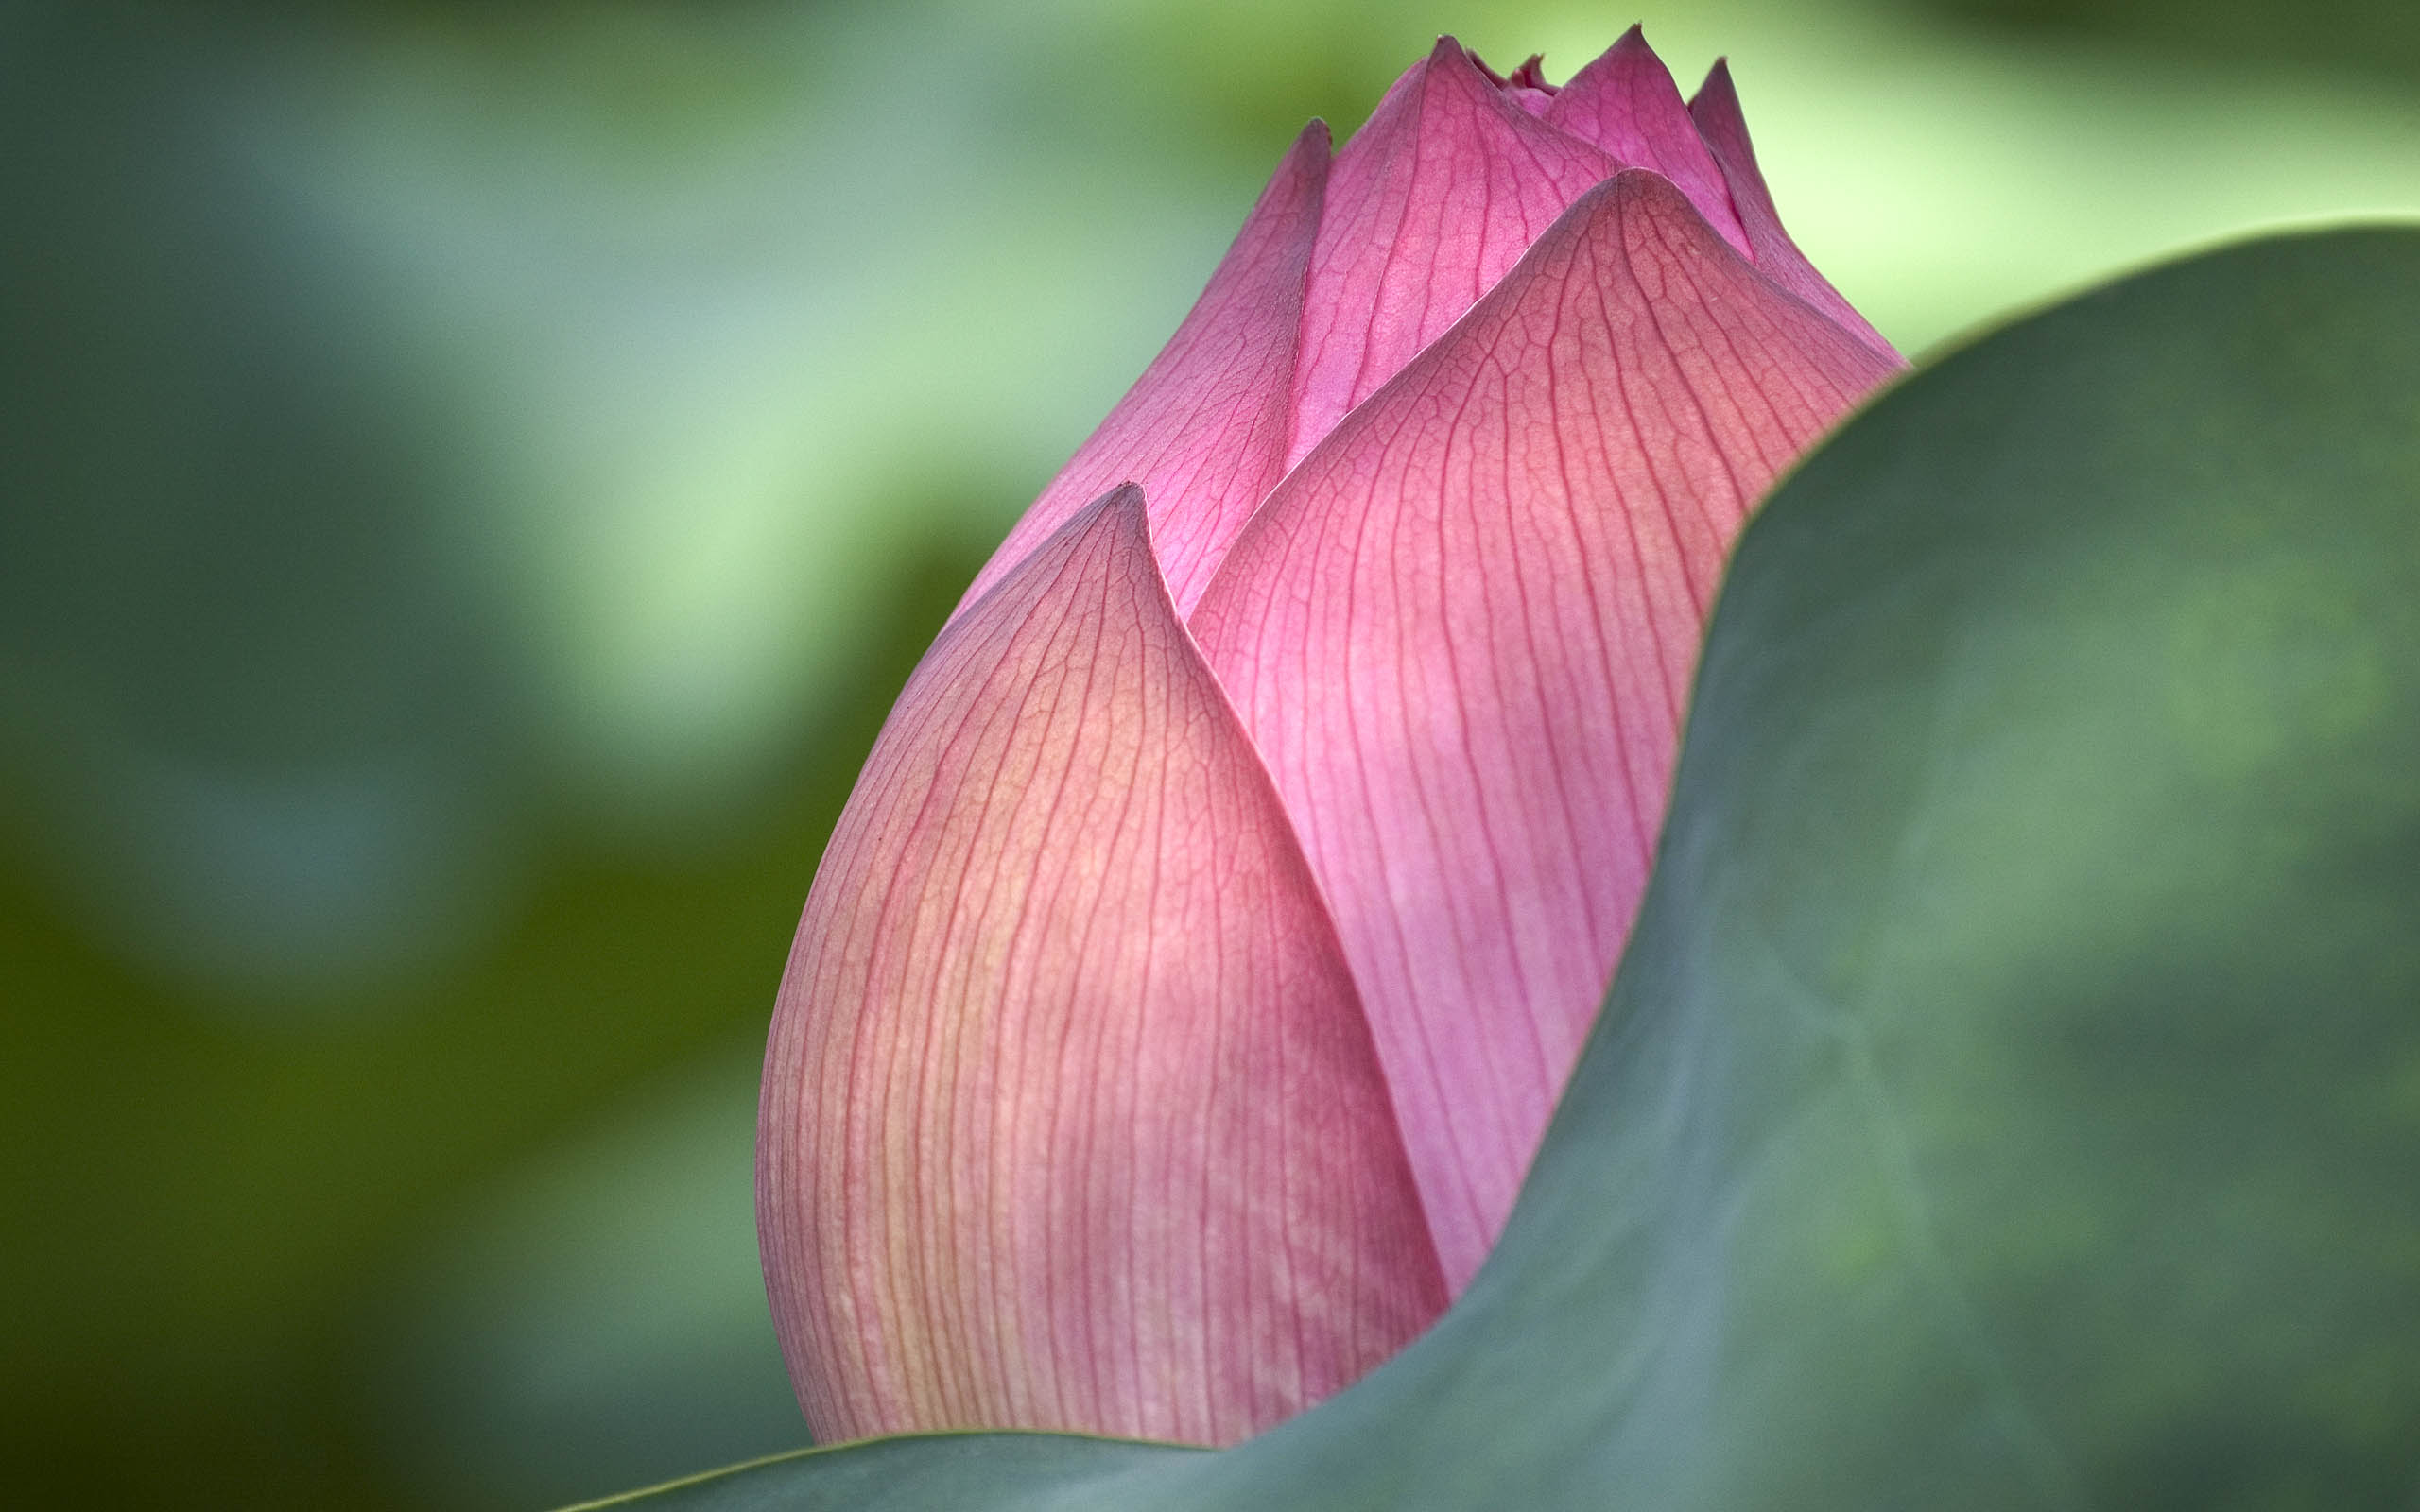 Lotus flower beautiful high quality hd wallpapers all hd wallpapers lotus 2 mightylinksfo